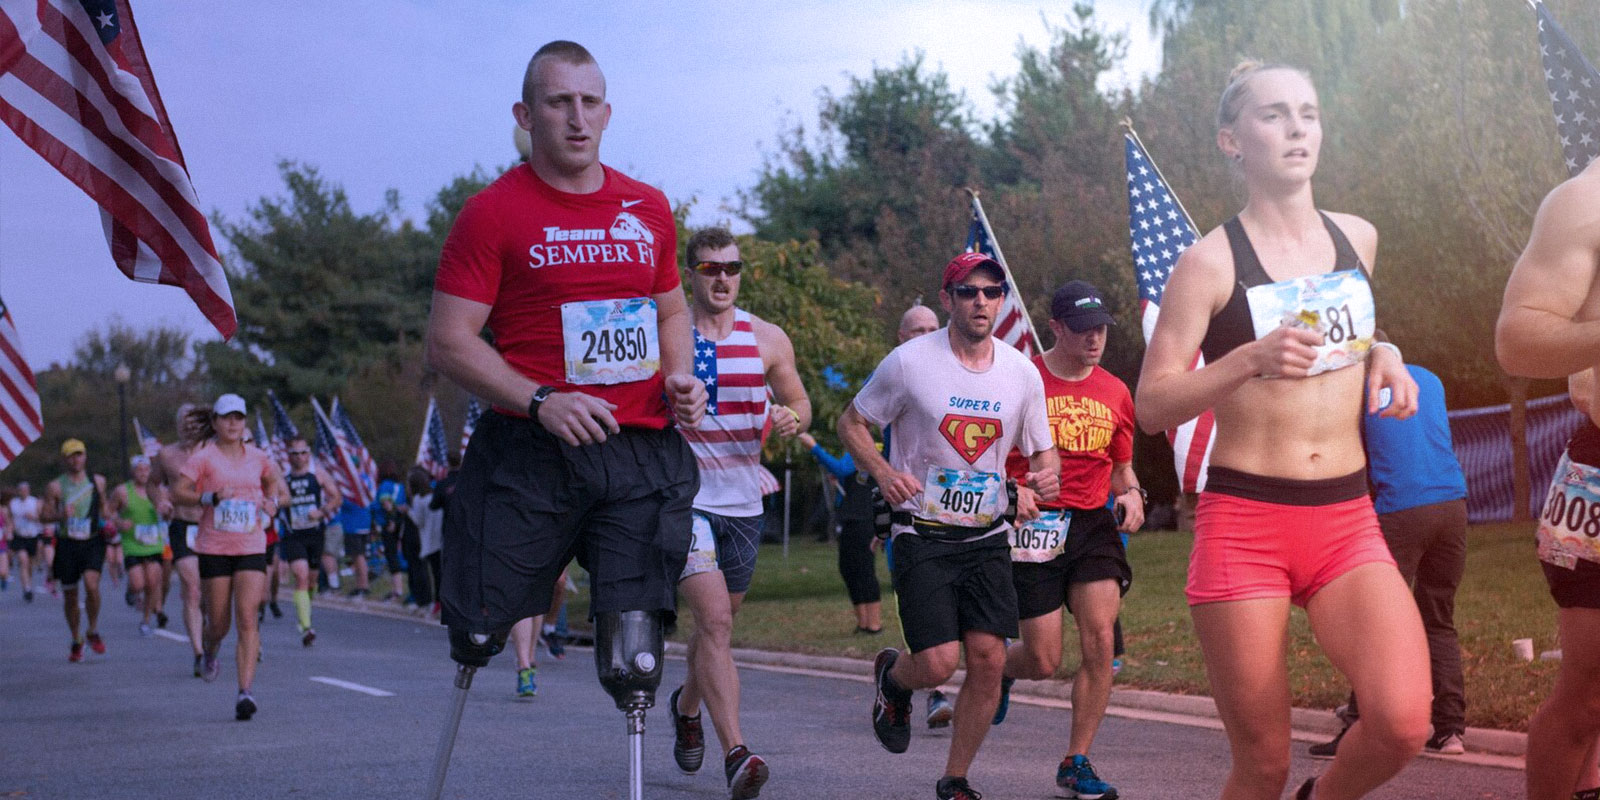 Marathon for military service members